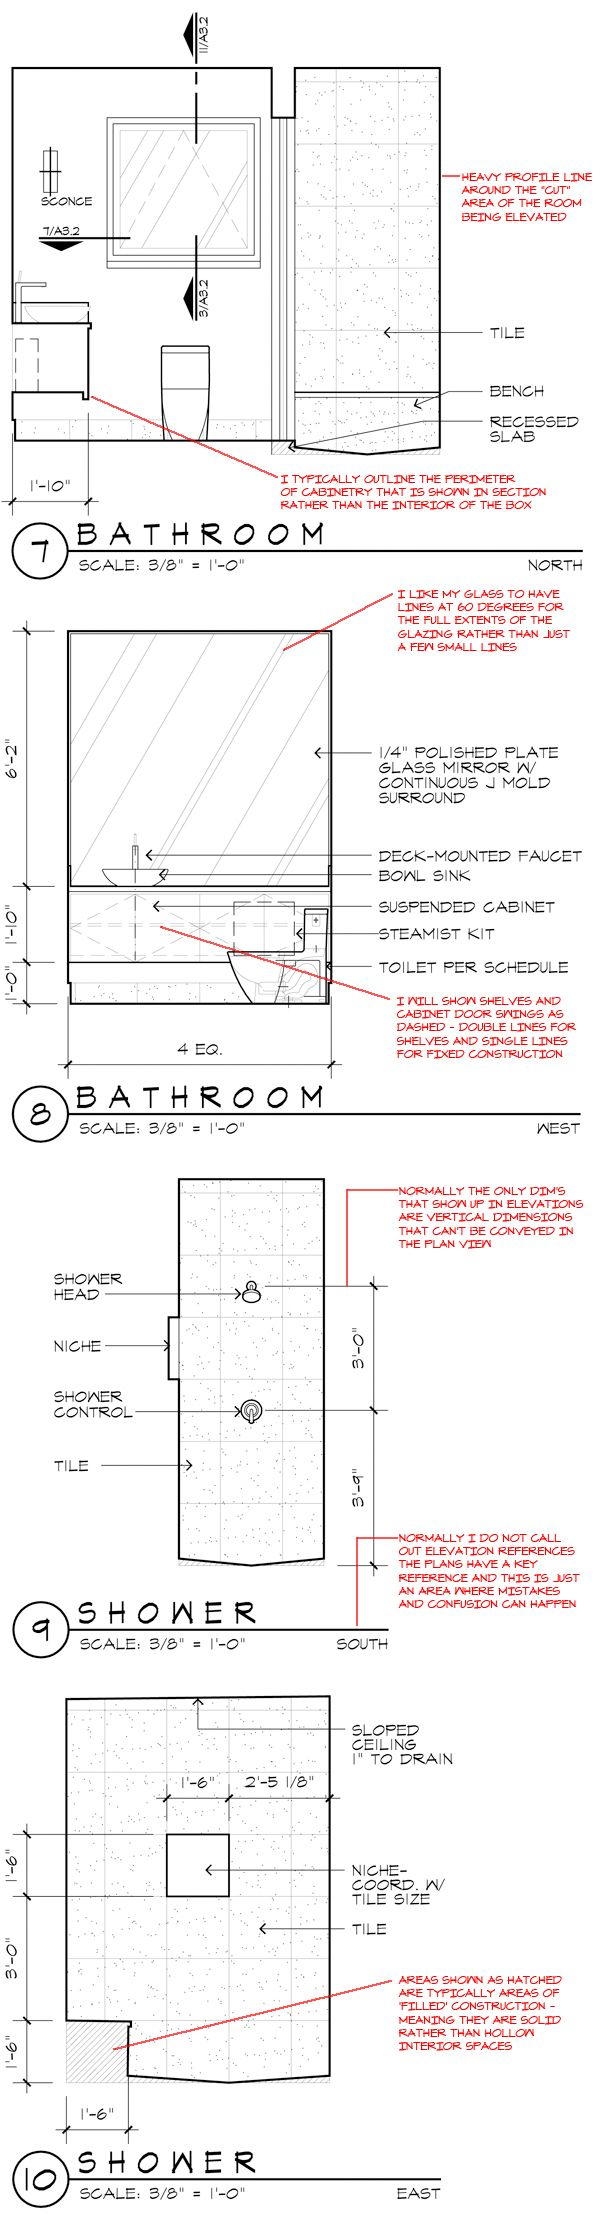 Bathroom drawings design - Interior Elevations Architectural Graphics Standards